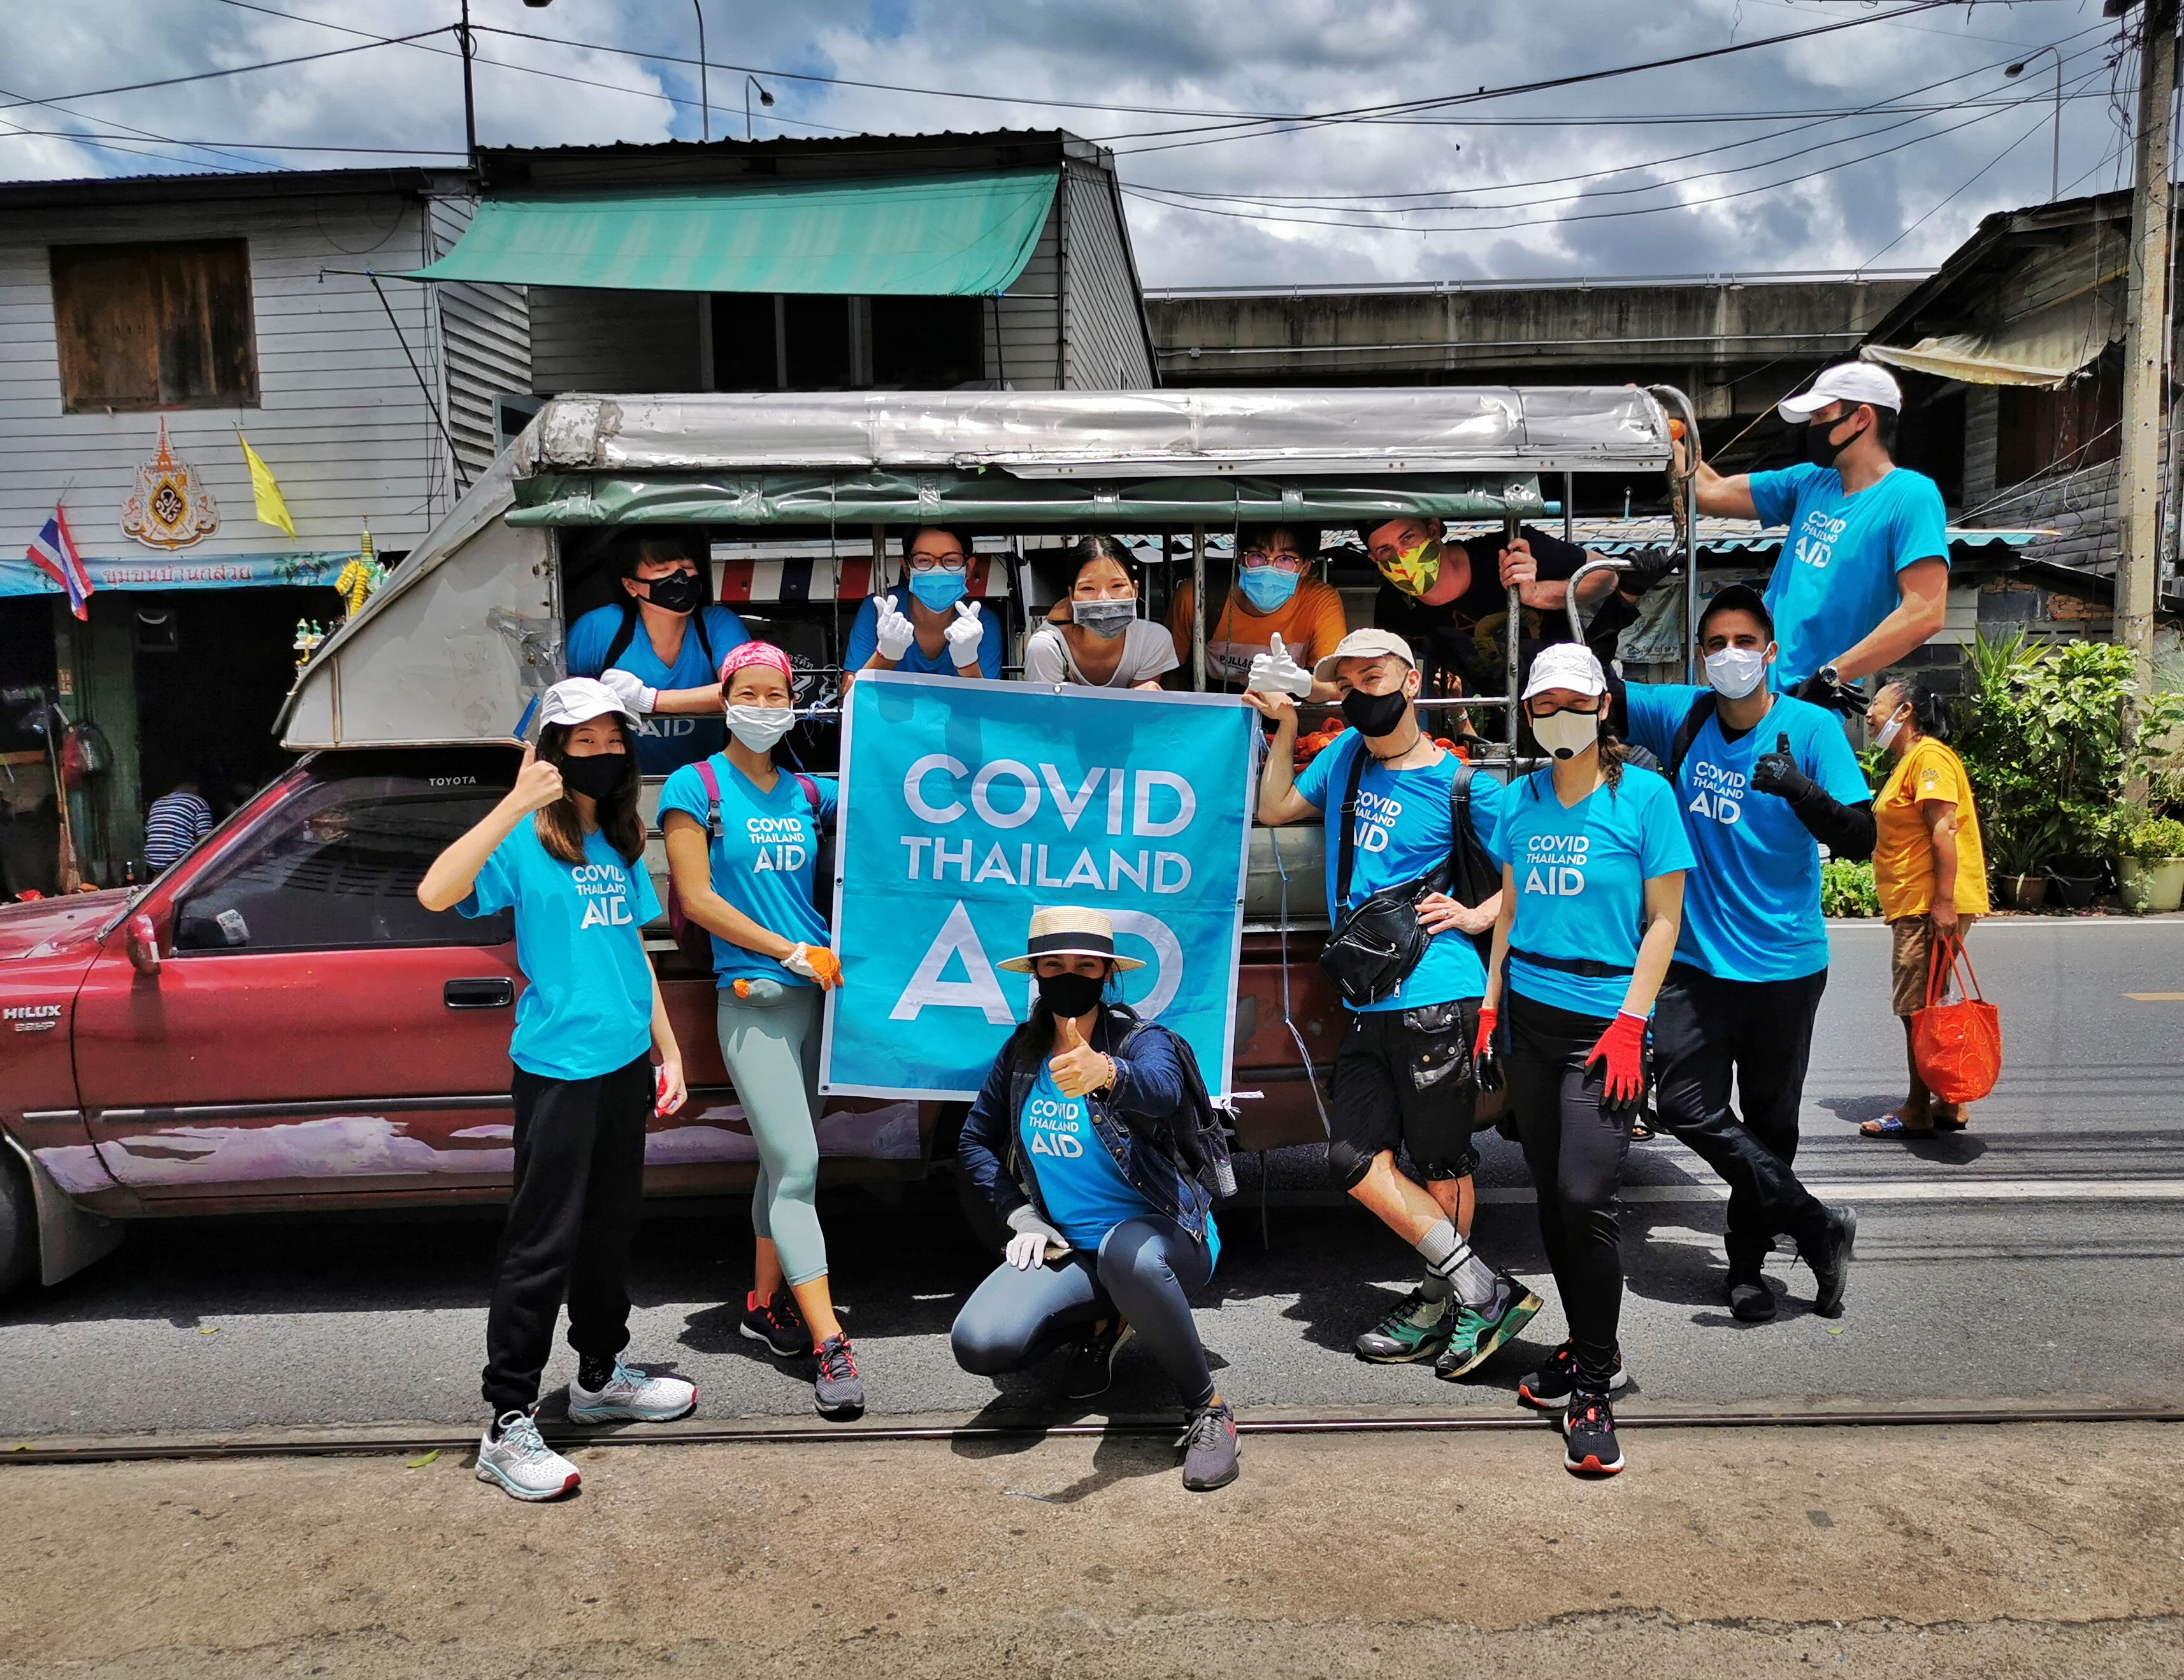 Covid Group A